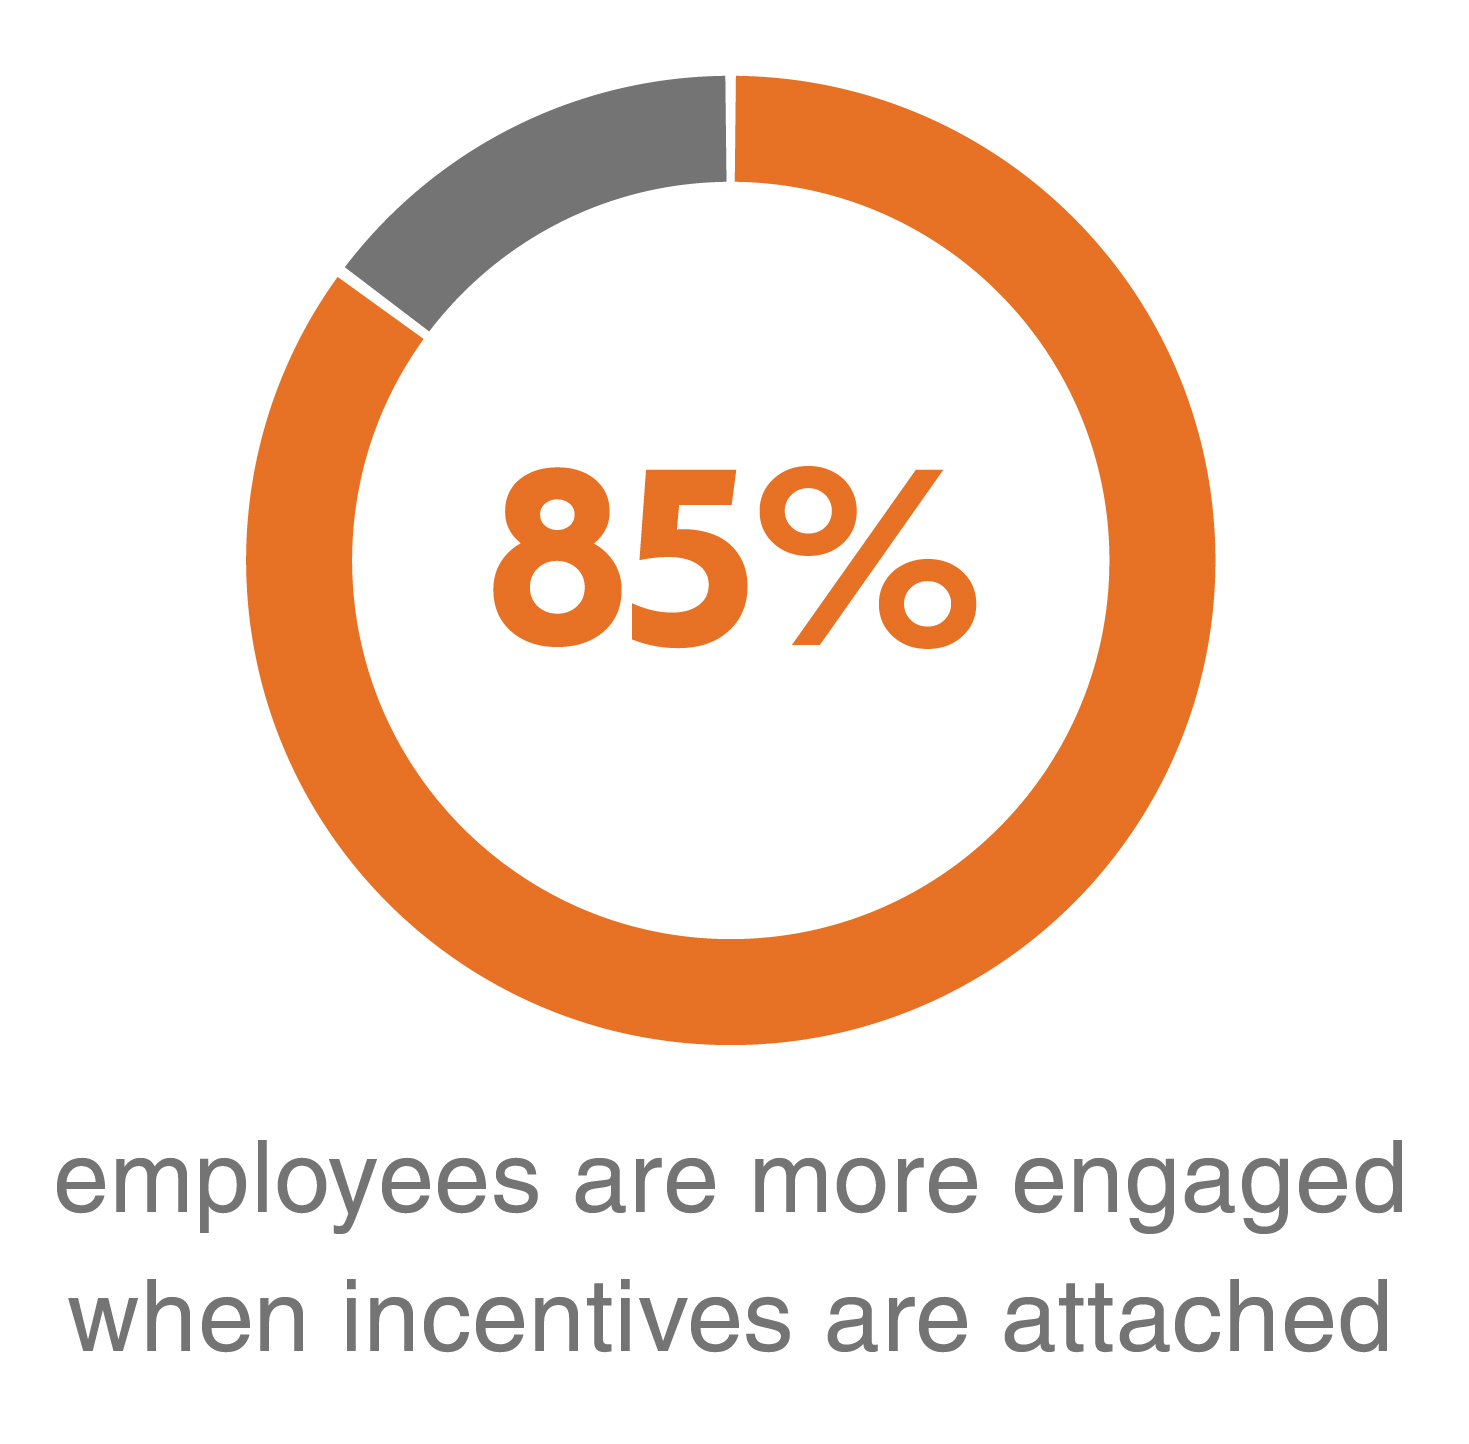 85% employees are more engaged when incentives are attached